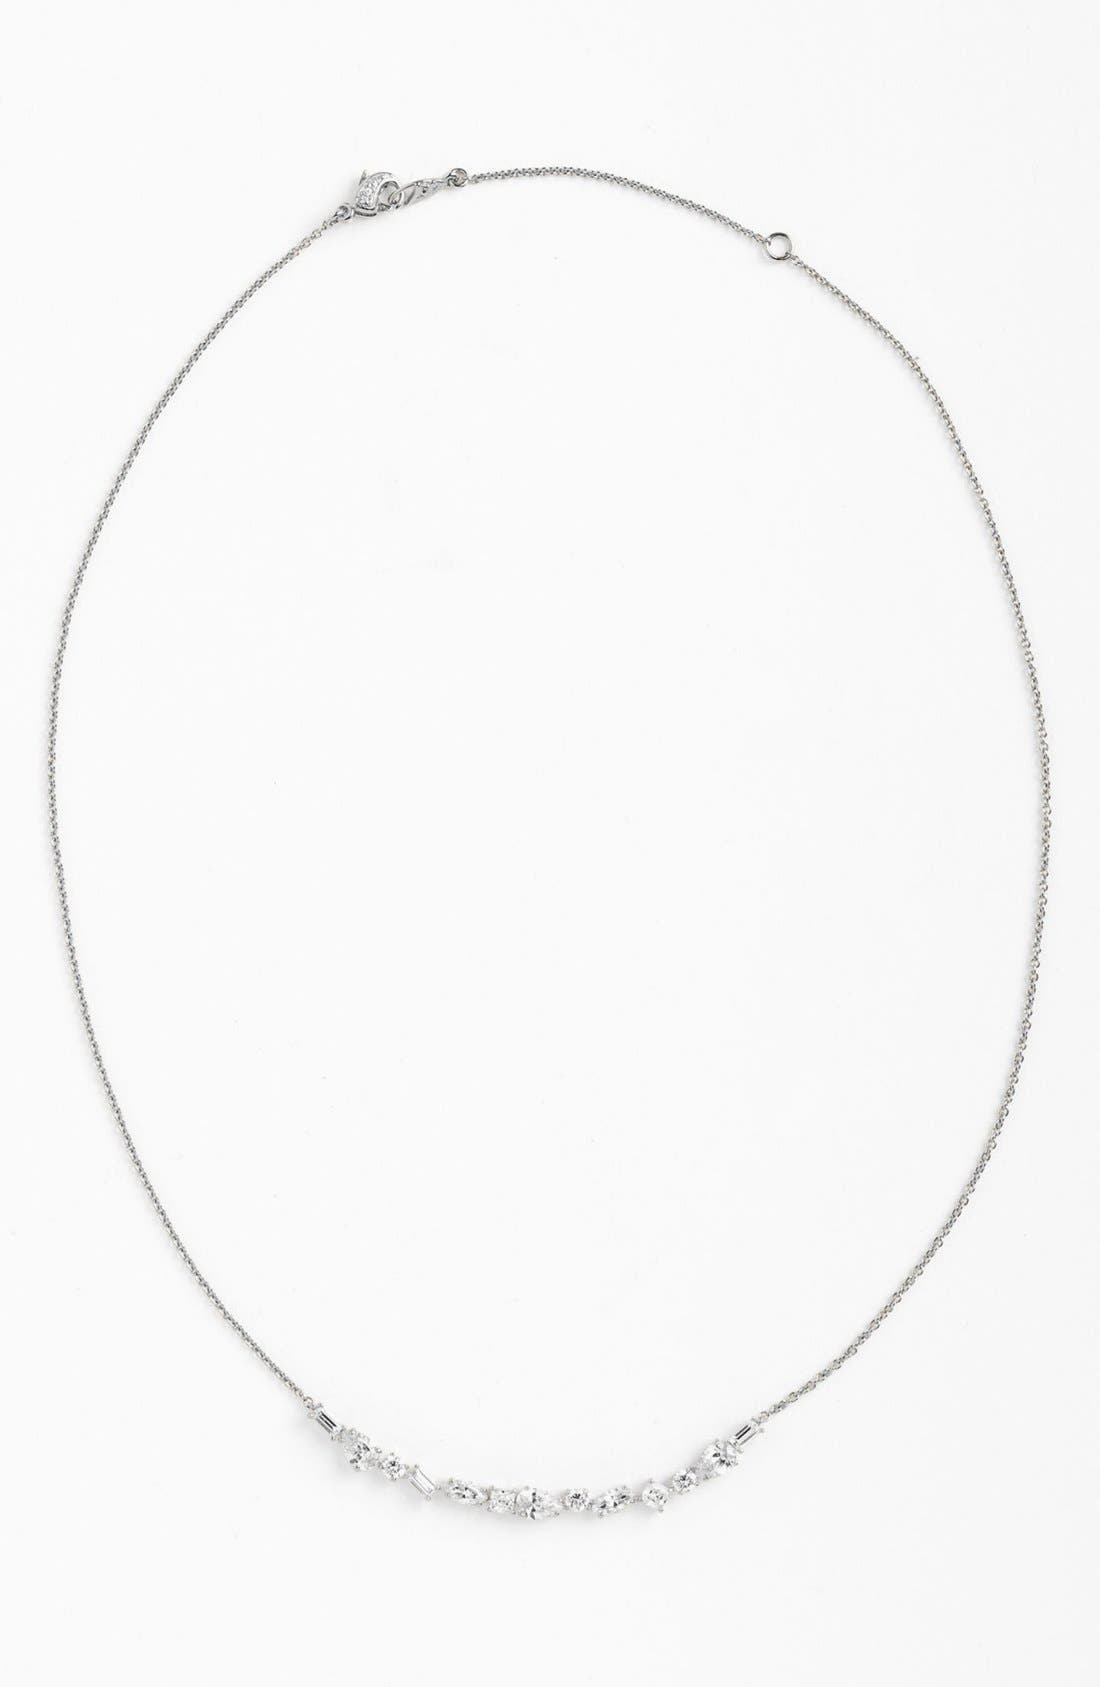 Main Image - Nadri Mixed Cut Crescent Necklace (Nordstrom Exclusive)